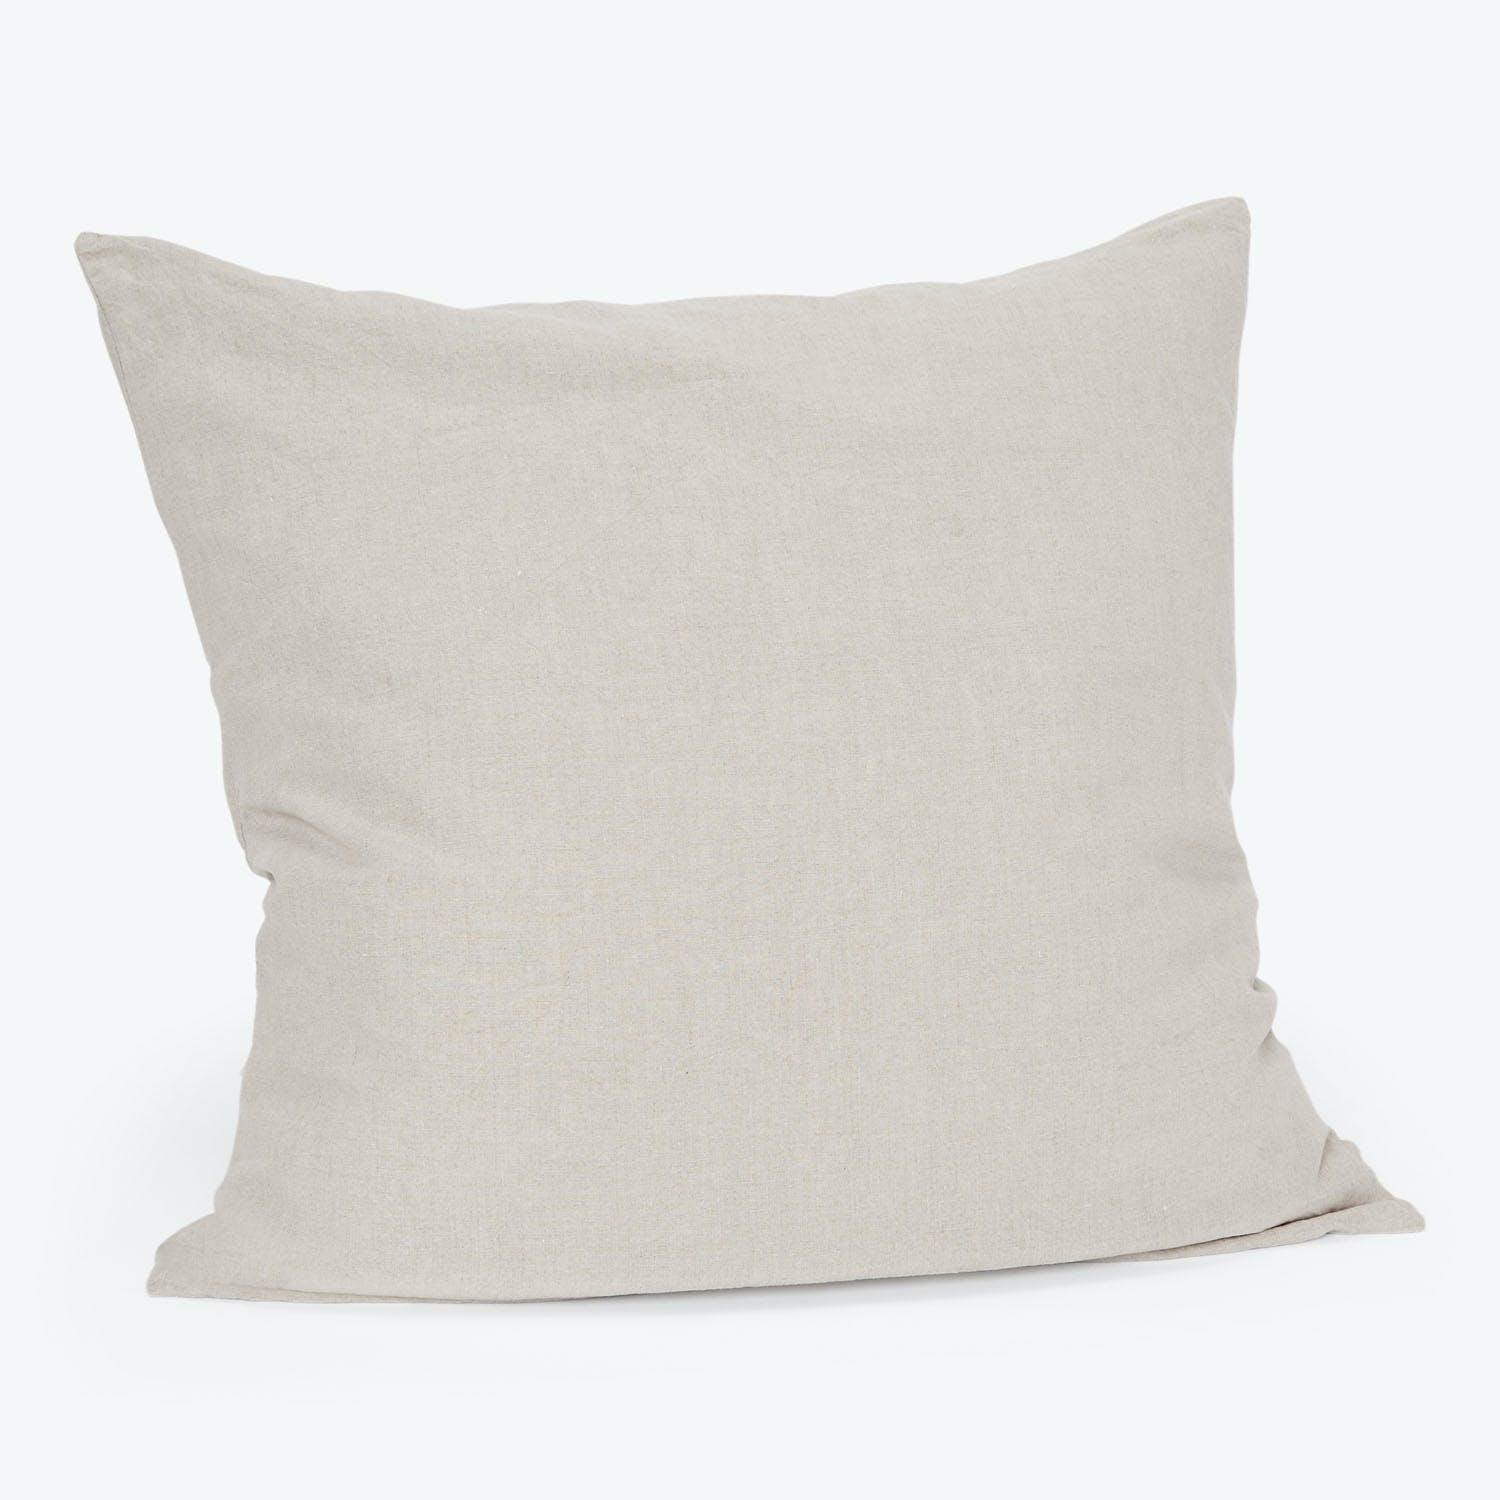 Linen Euro Sham Natural Abc Home